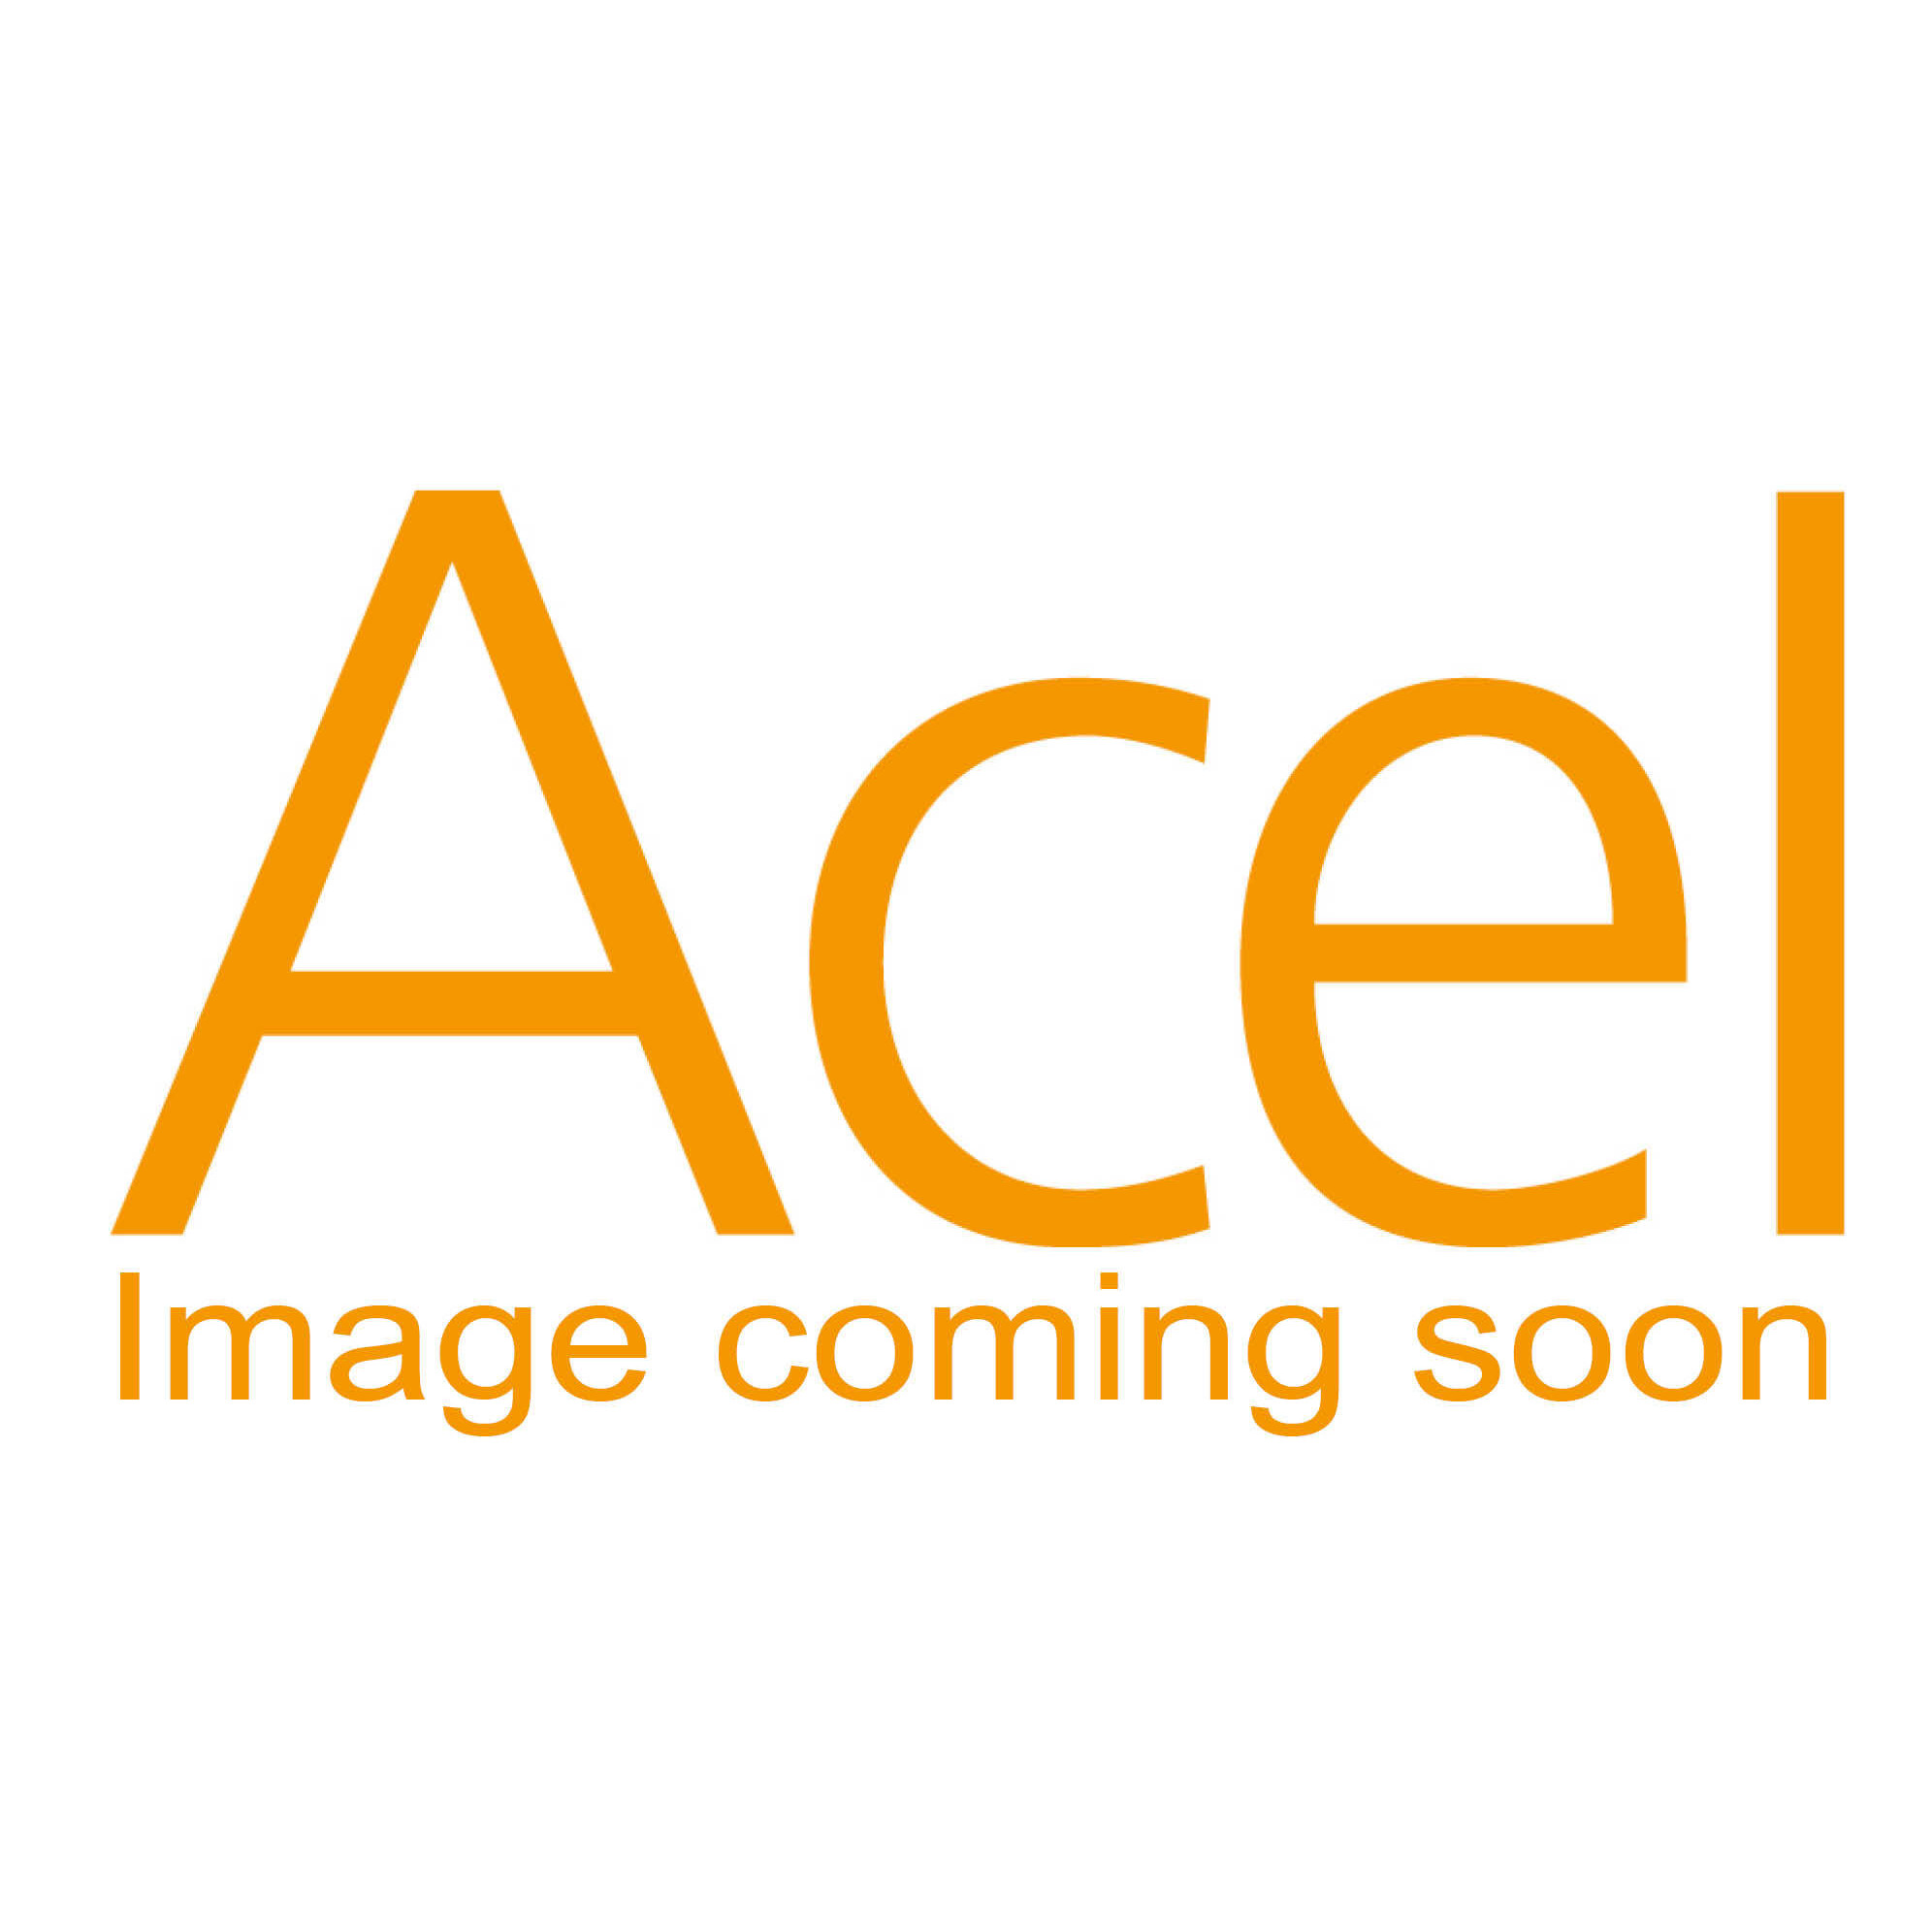 Coaxial cable connection kit